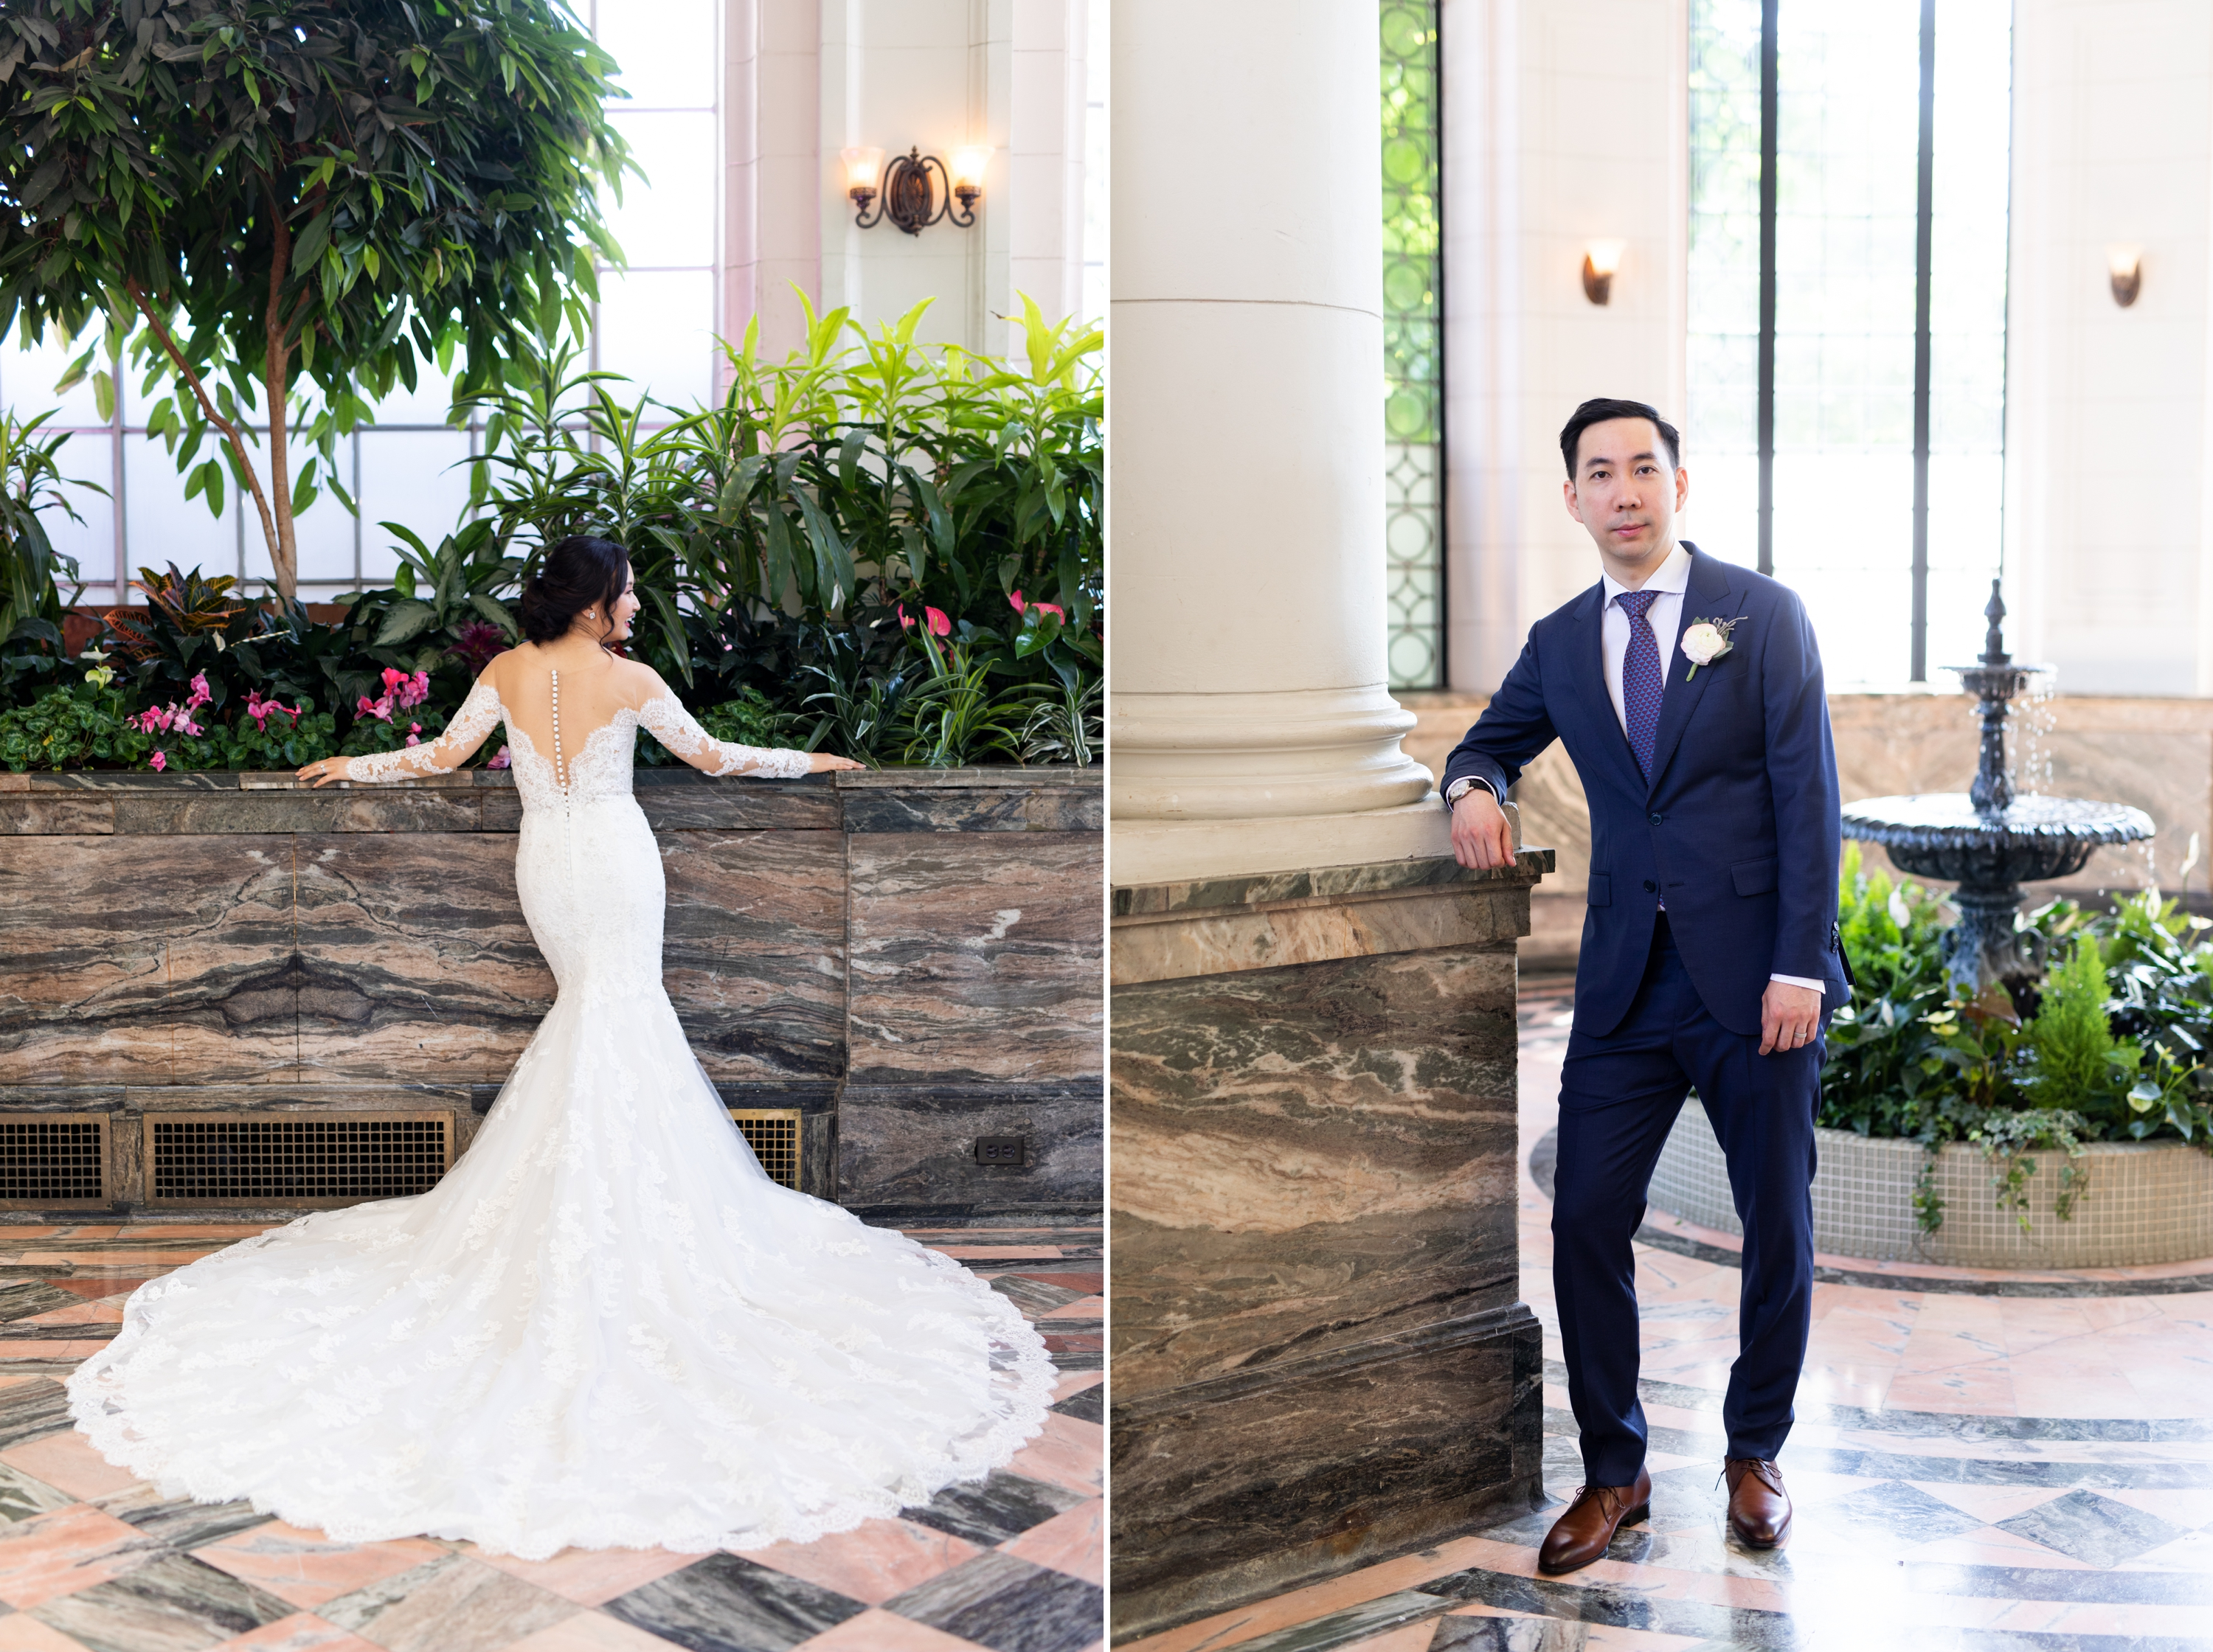 Bride Groom Toronto Casa Loma Four Seasons Chinese Wedding Zsuzsi Pal Photography Cindy Brian